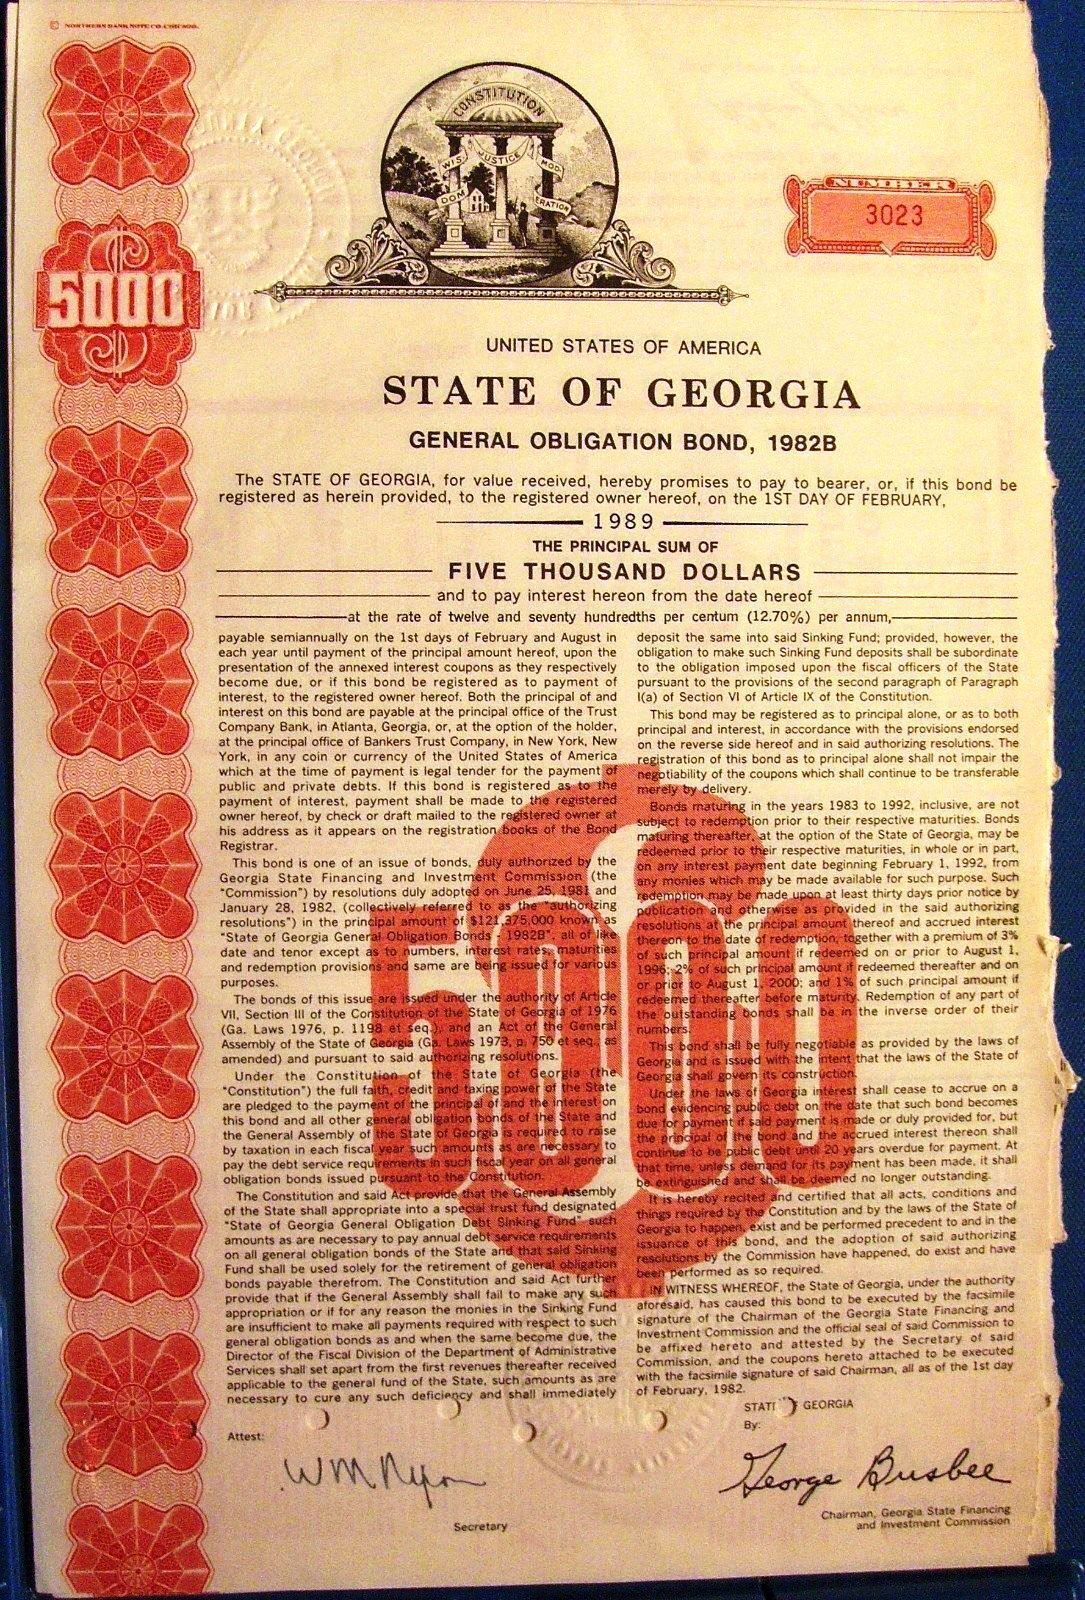 State Of Georgia, General Obligation 5000 Bond Dated 1982 - $7.00